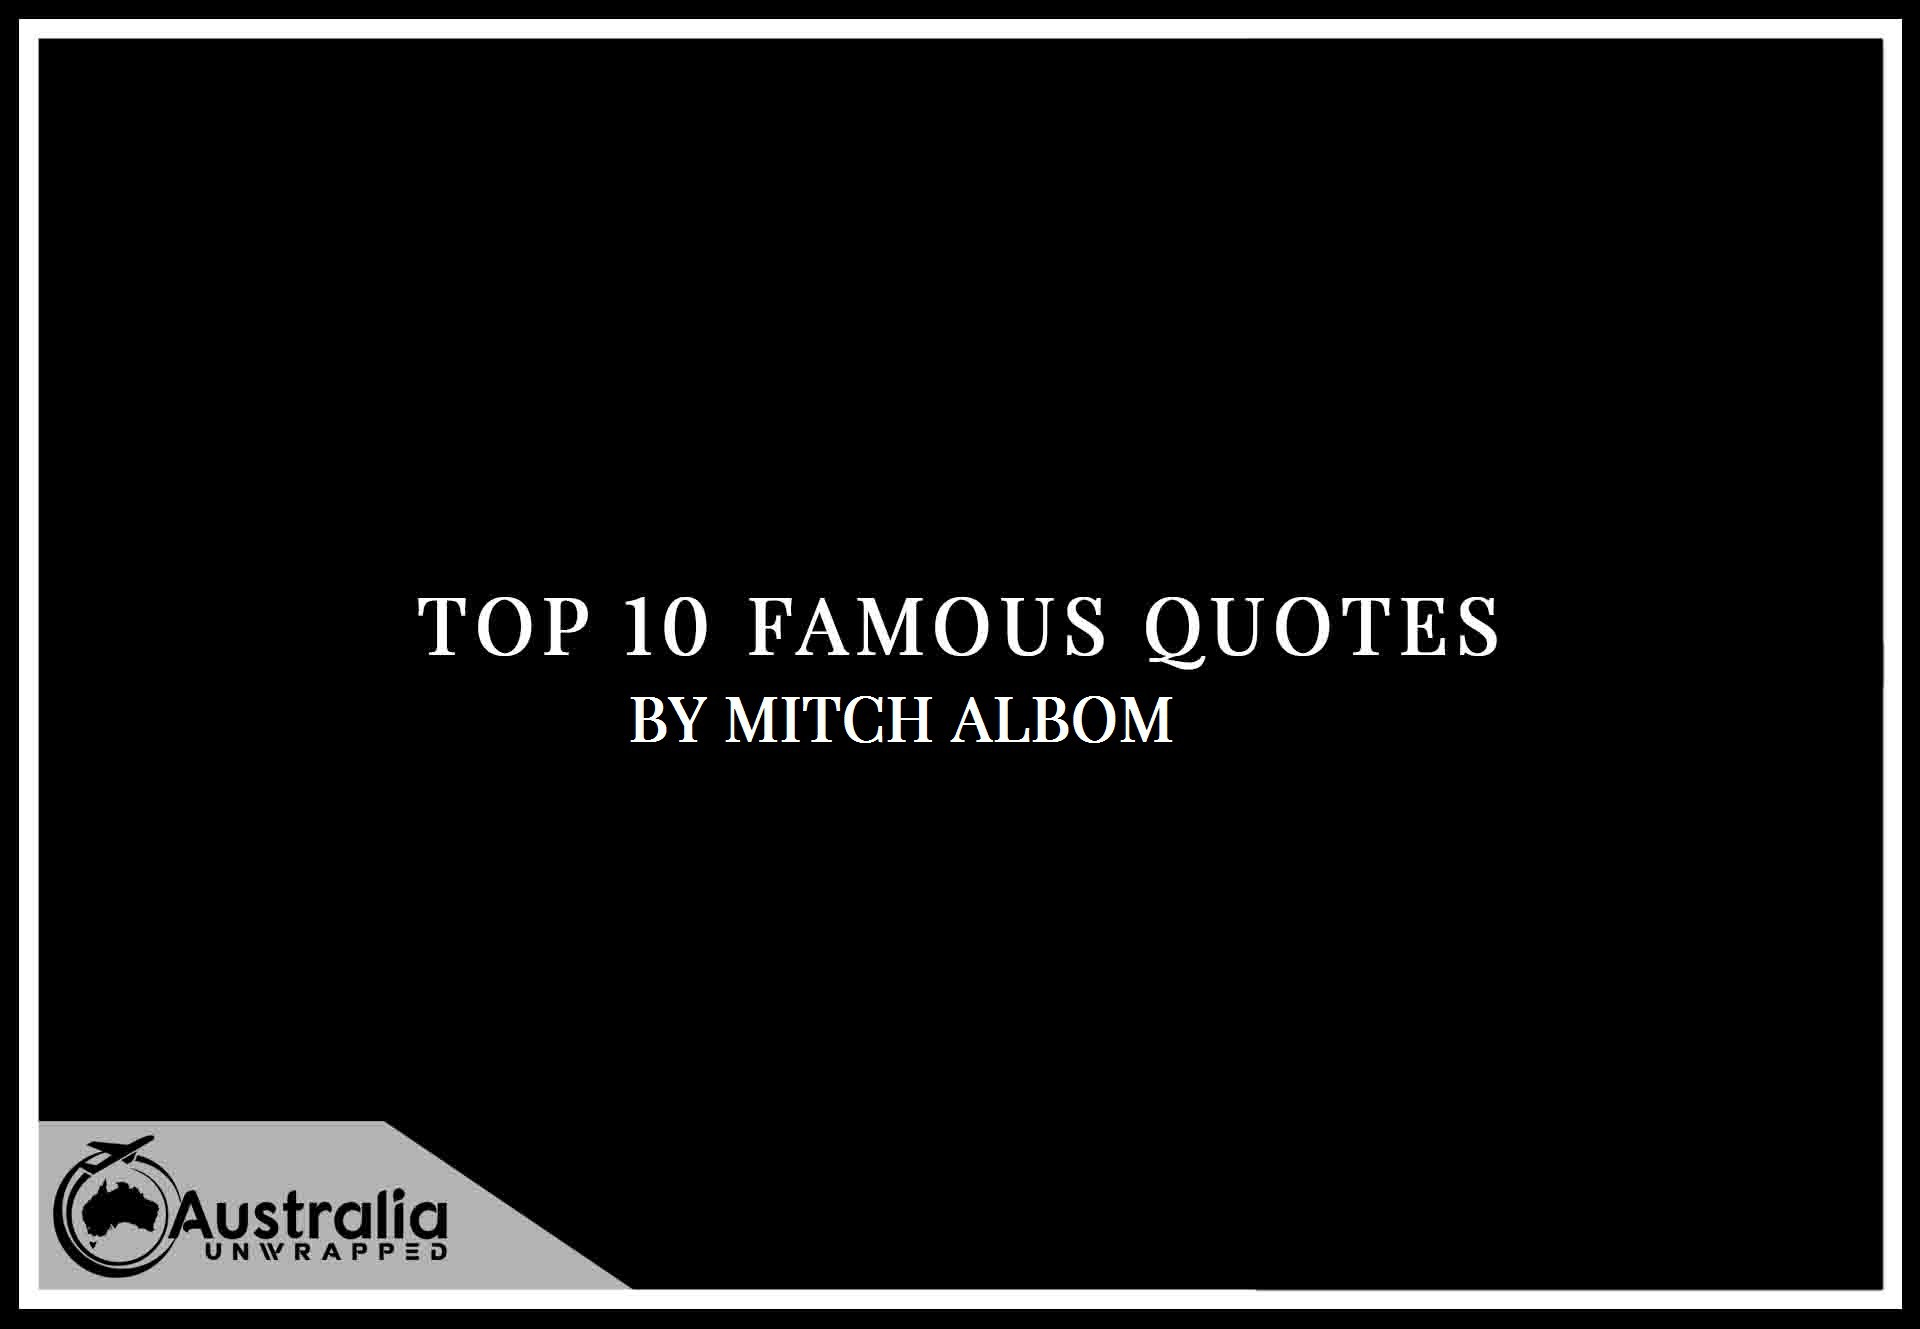 Mitch Albom's Top 10 Popular and Famous Quotes